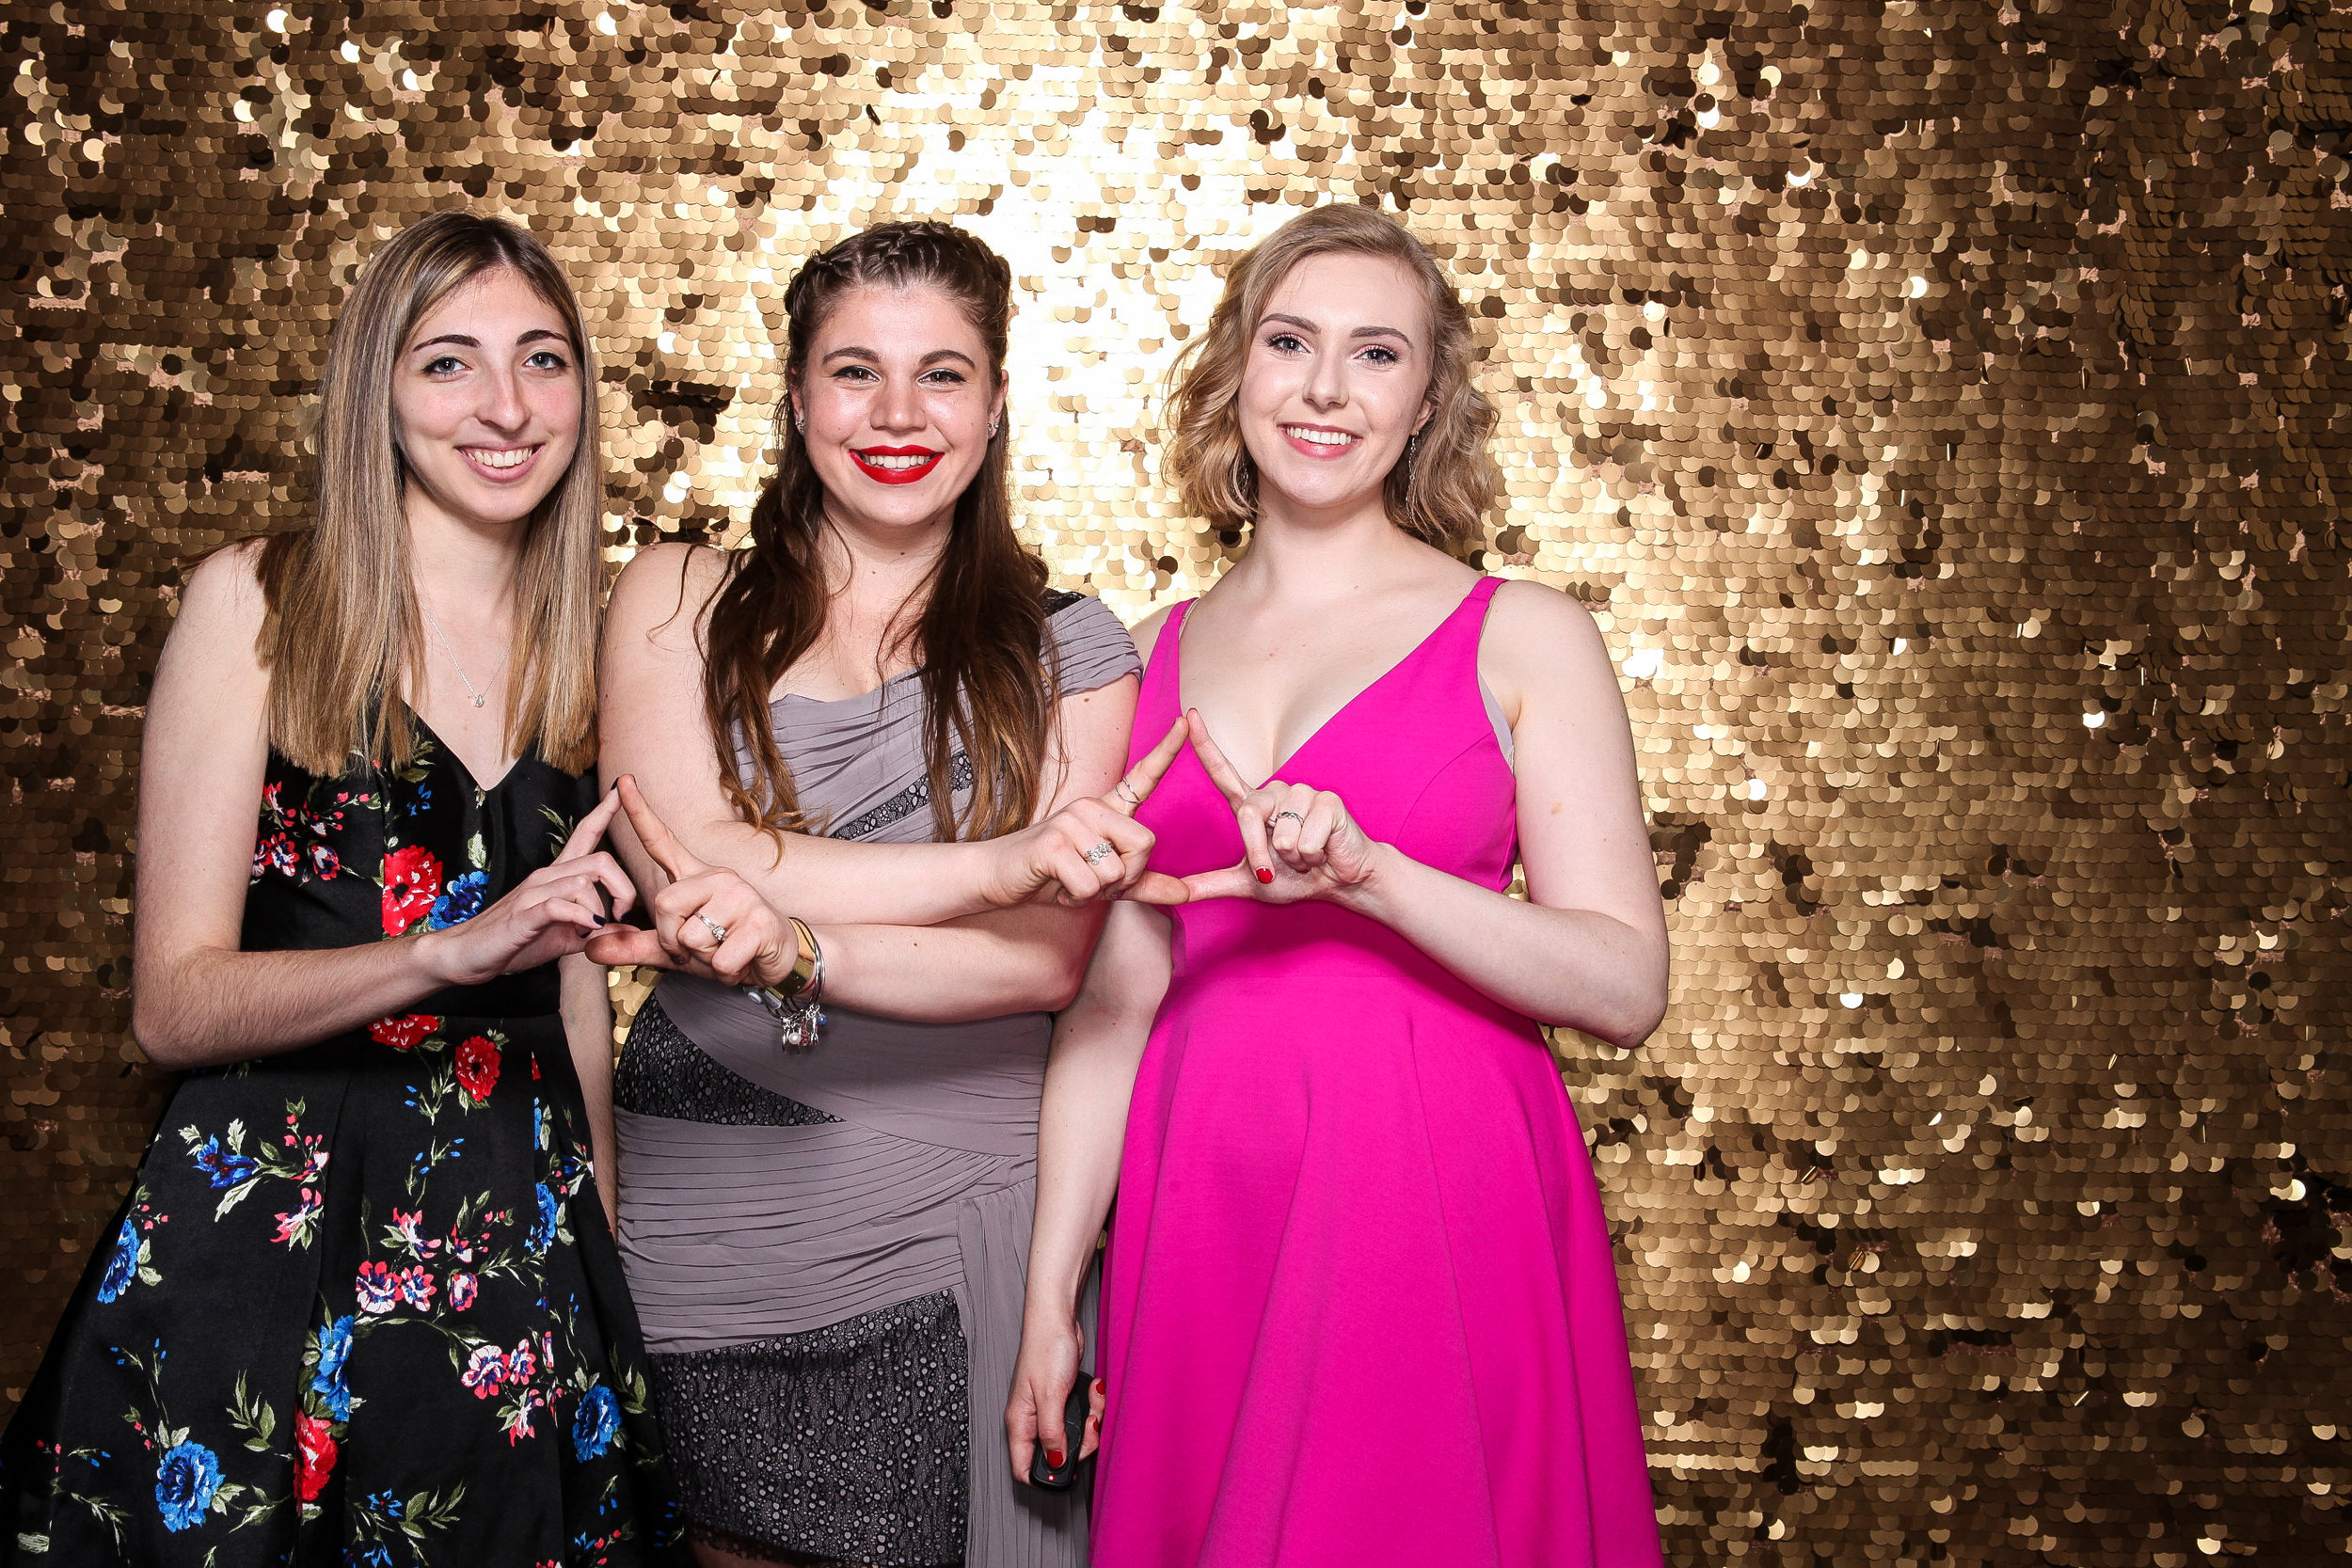 20190503_Adelphi_Senior_Formal-180.jpg